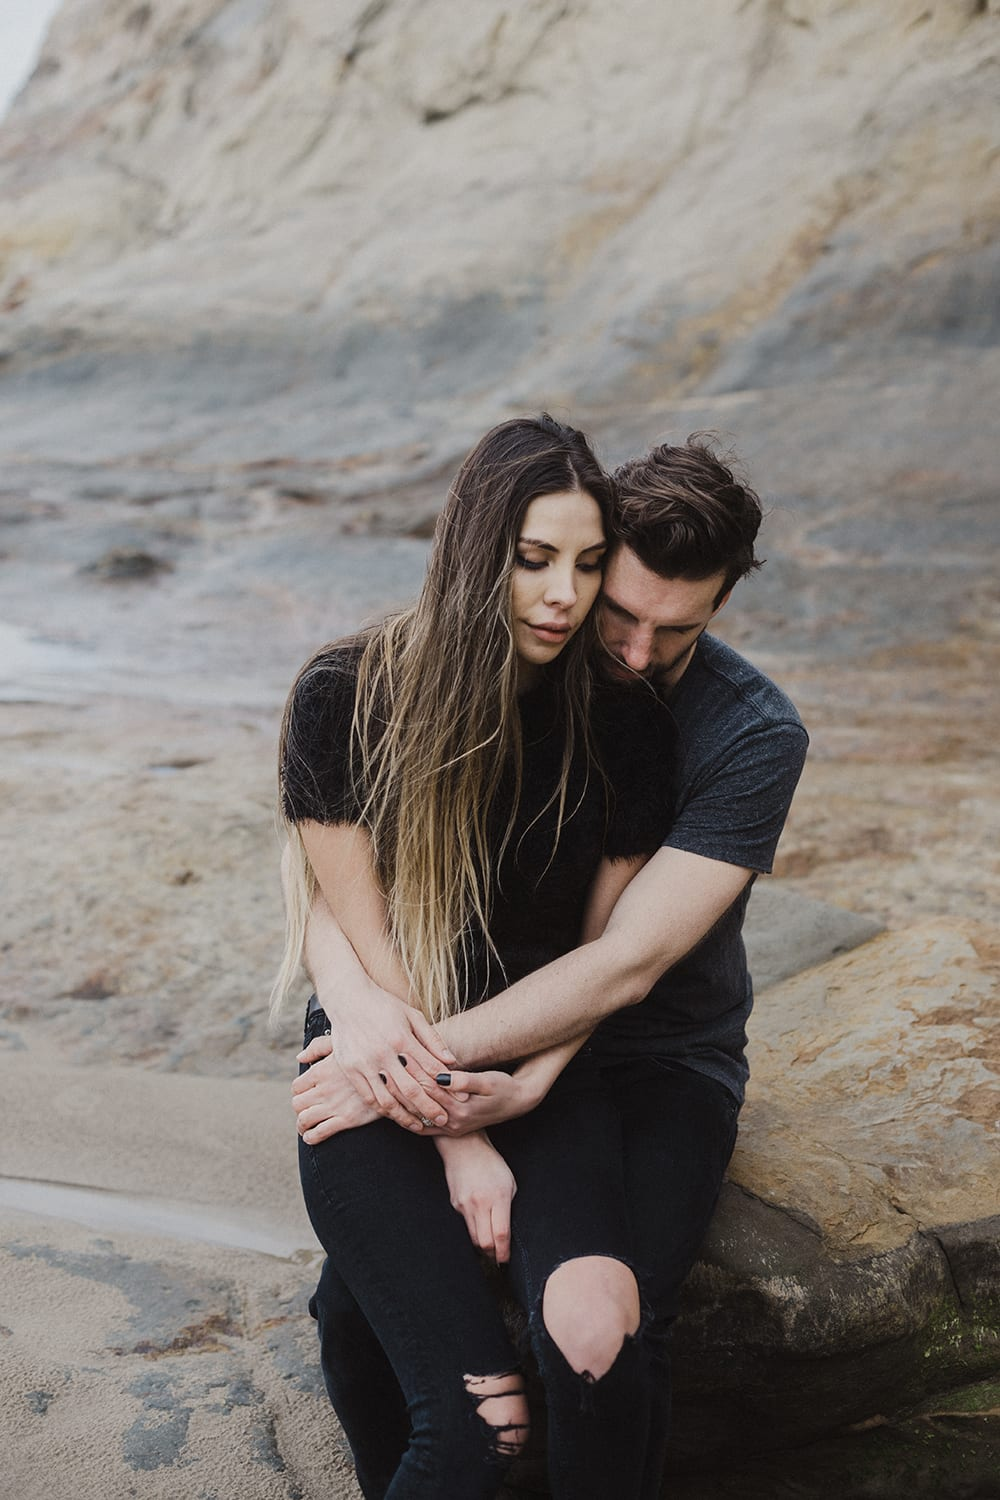 guy squeezing hugging girl ripped jeans long hair